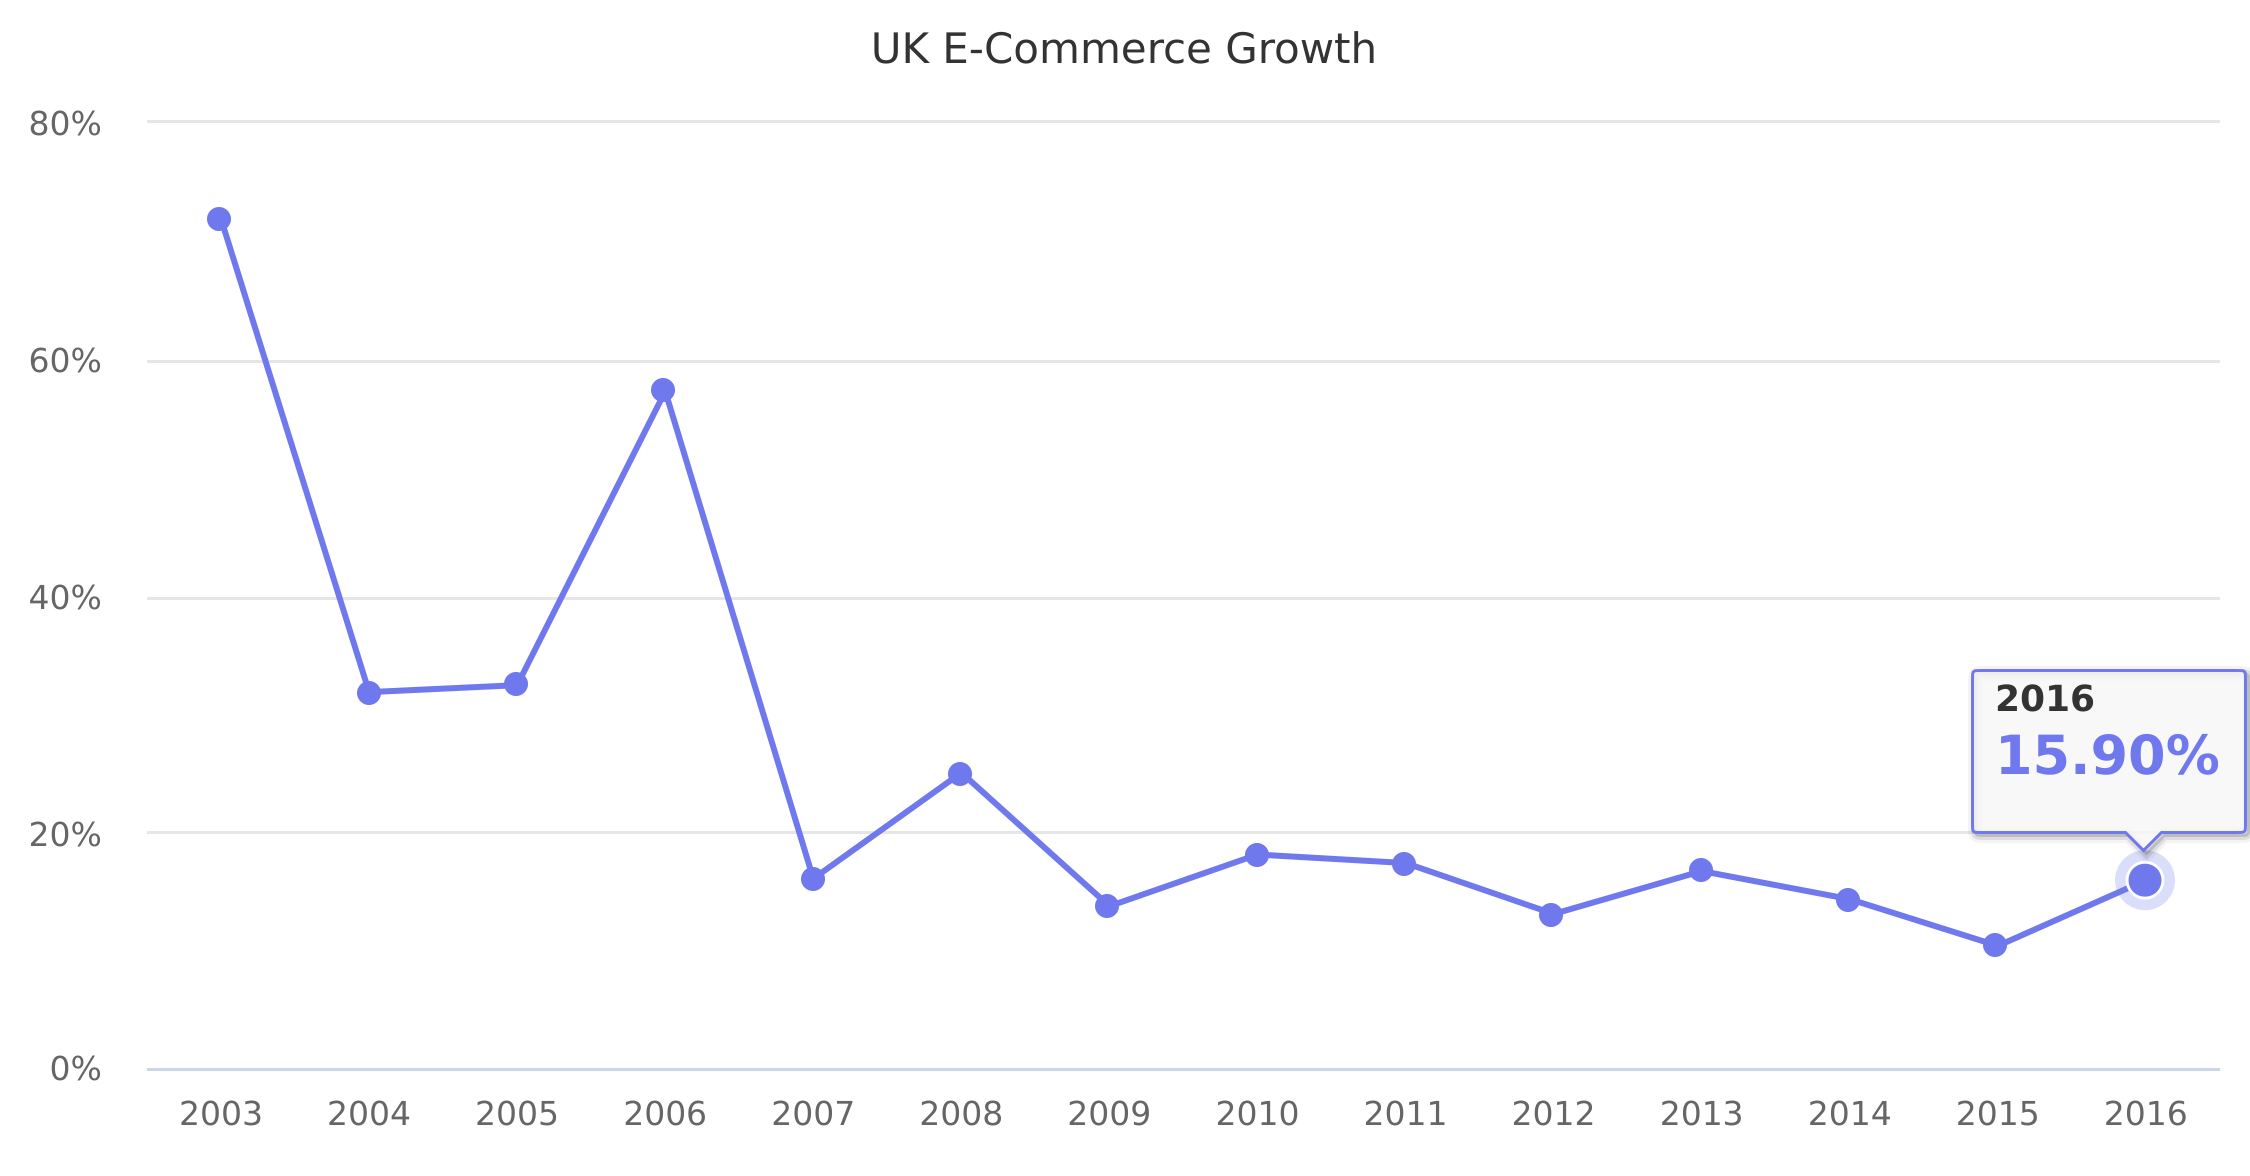 UK E-Commerce Growth 2003-2016